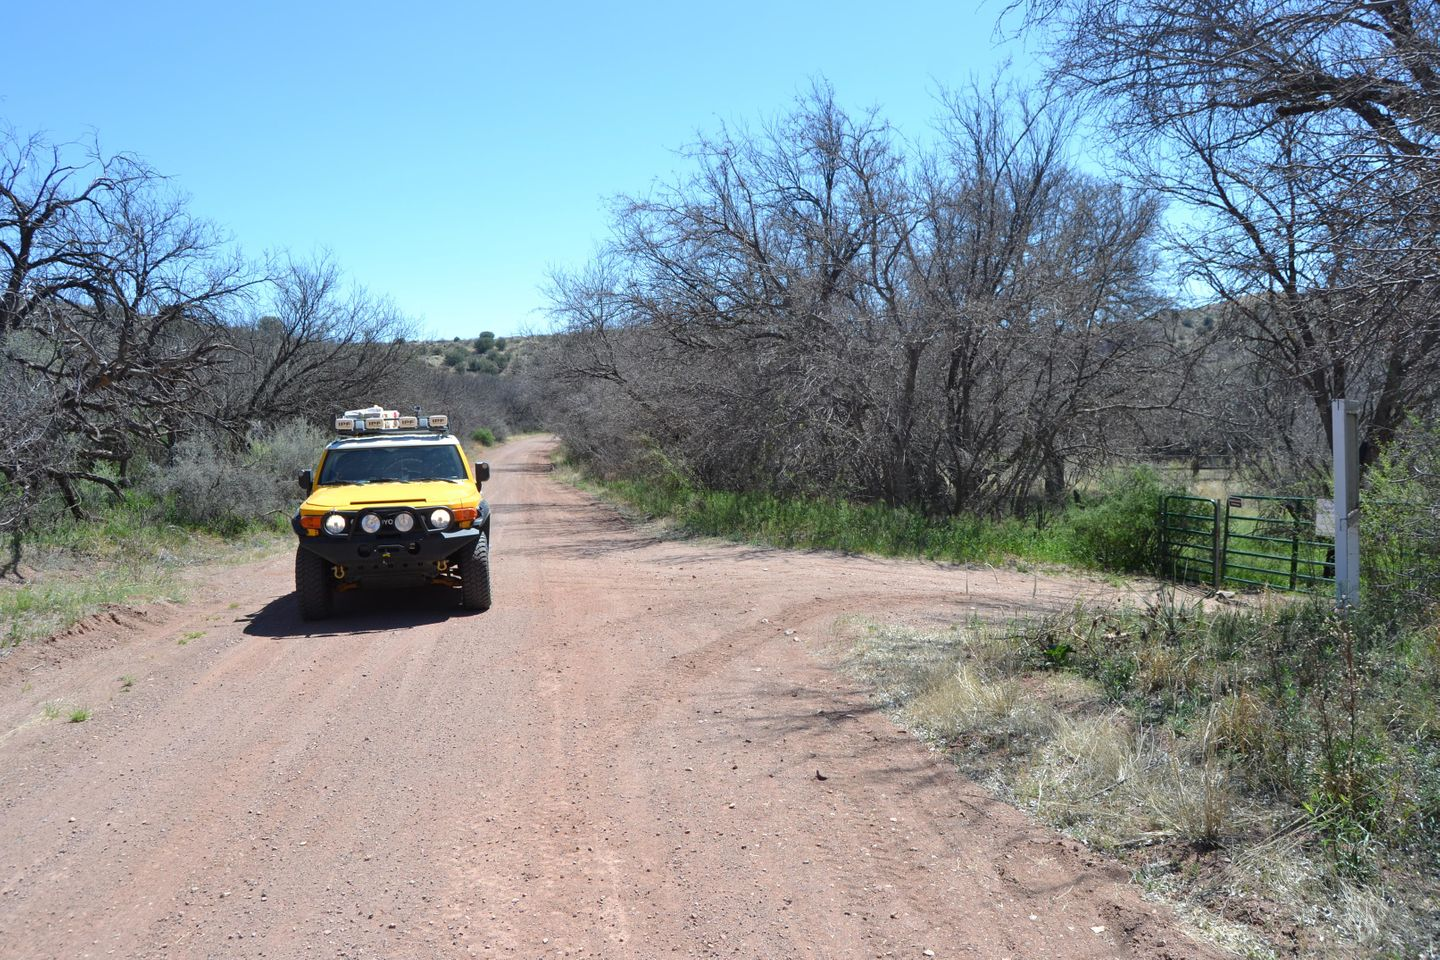 Jackson Cabin/Muleshoe Ranch Road - Waypoint 4: Hooker Hot Springs - Muleshoe Headquarters (Closed)